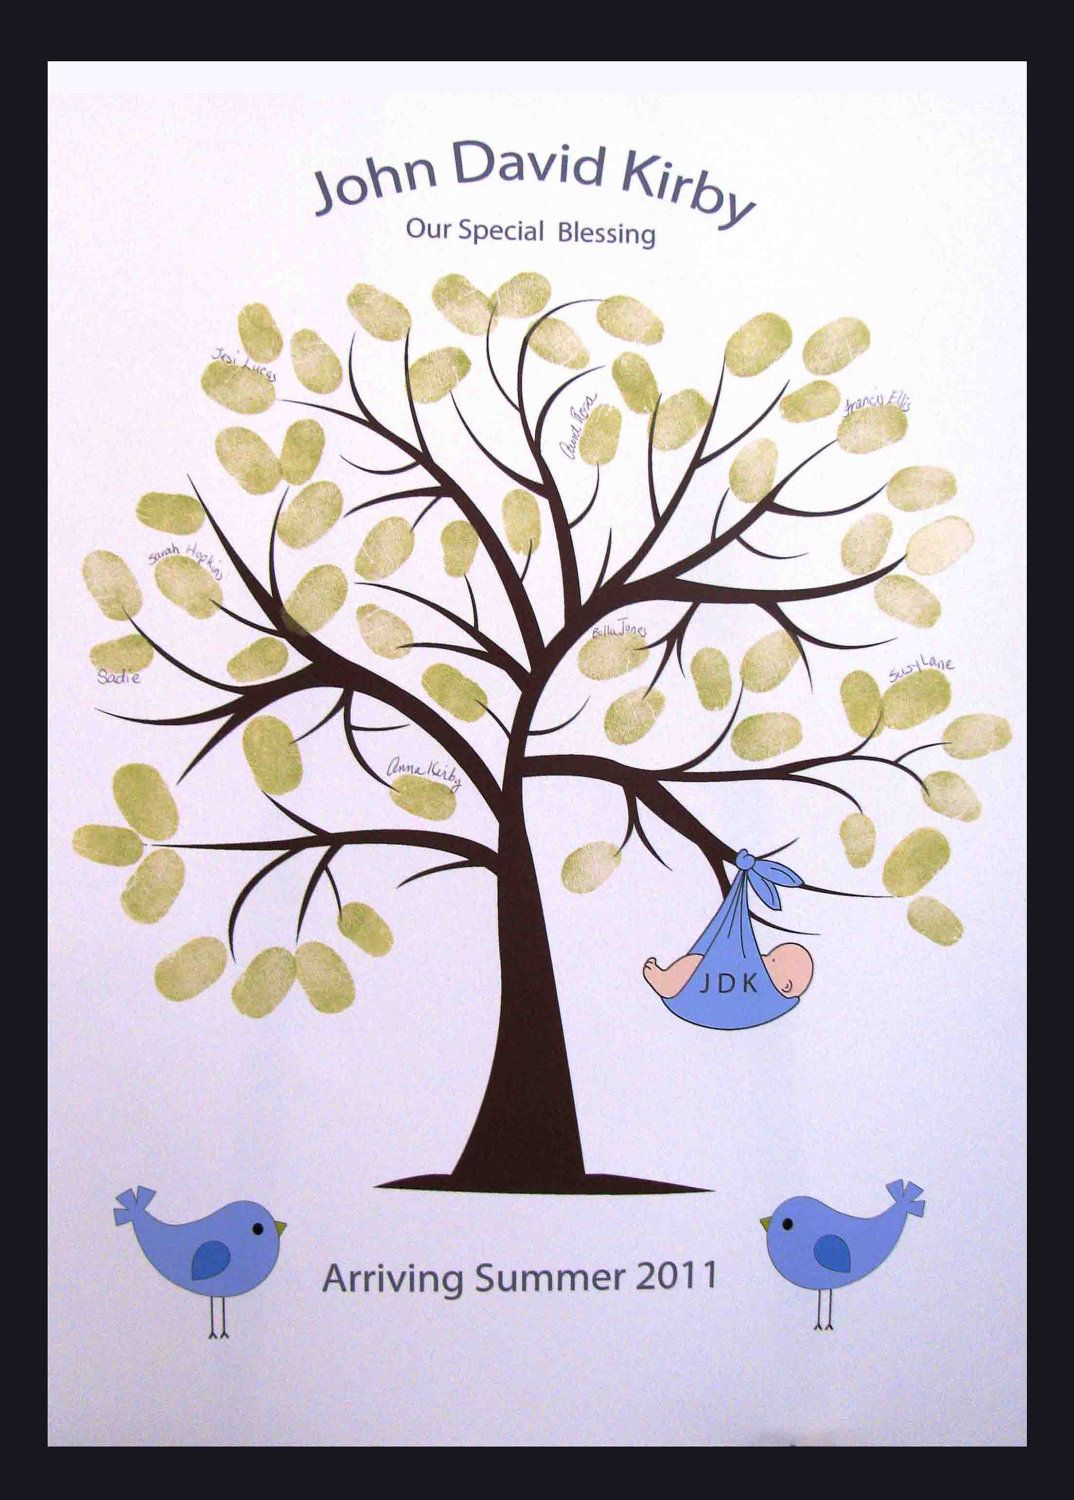 Baby Shower Tree Images ~ Sweet swirly thumbprint or fingerprint tree with baby and